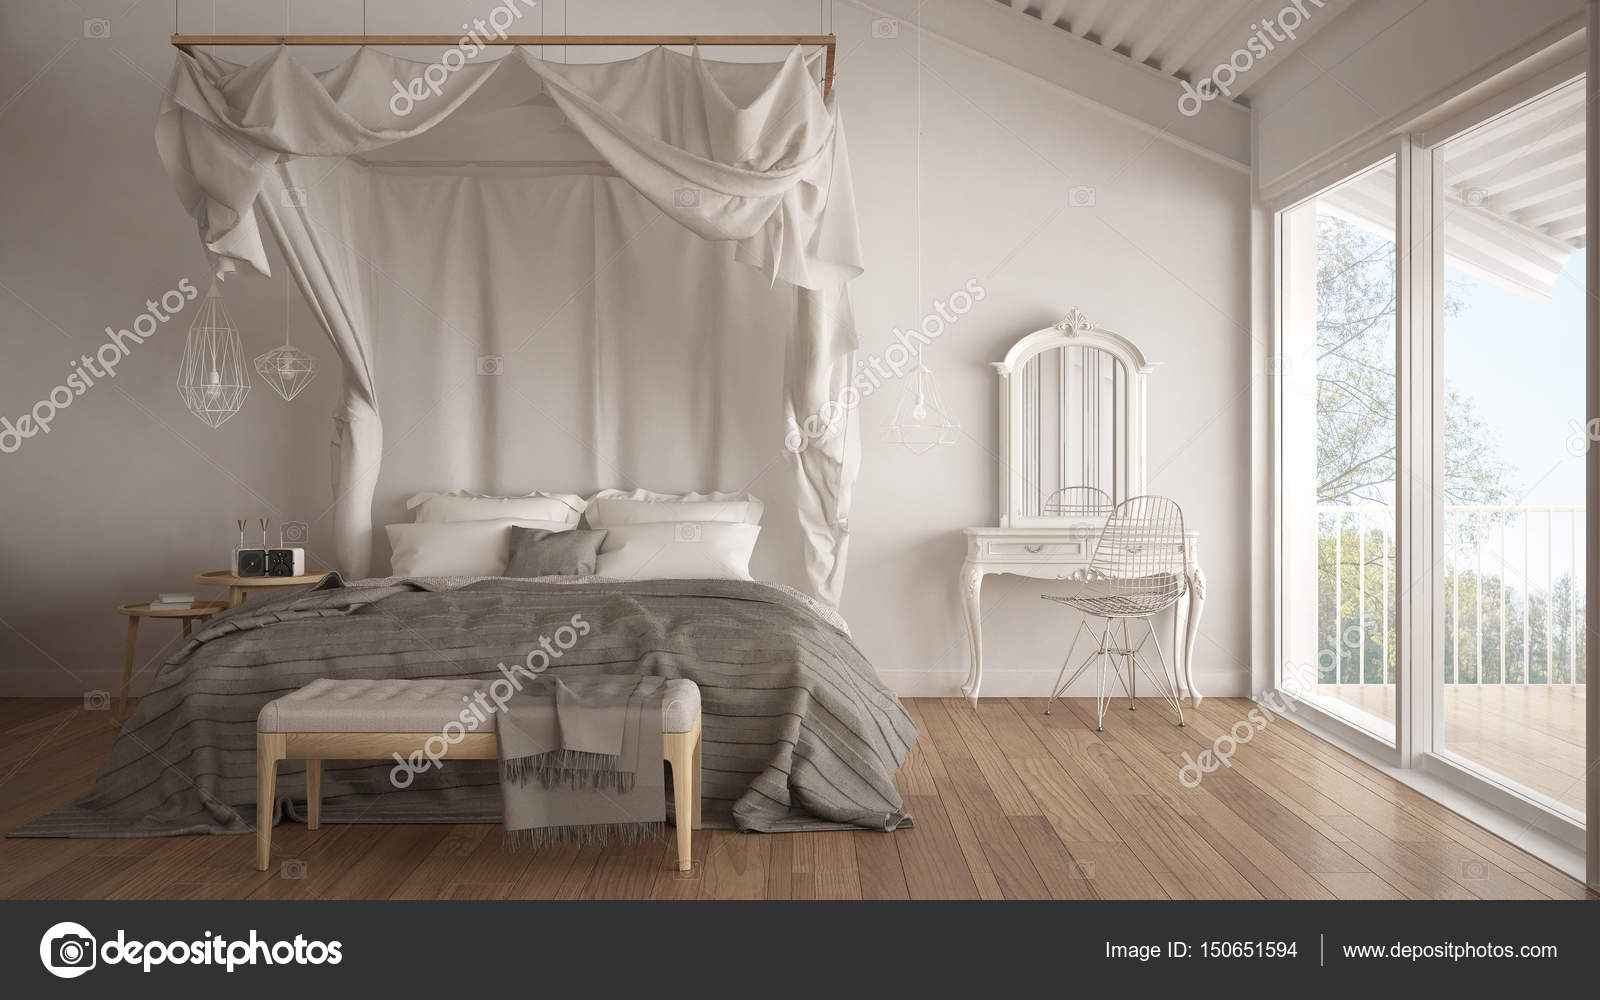 Canopy bed in minimalistic white bedroom with big window scandiu2013 stock image & Canopy bed in minimalistic white bedroom with big window scandi ...